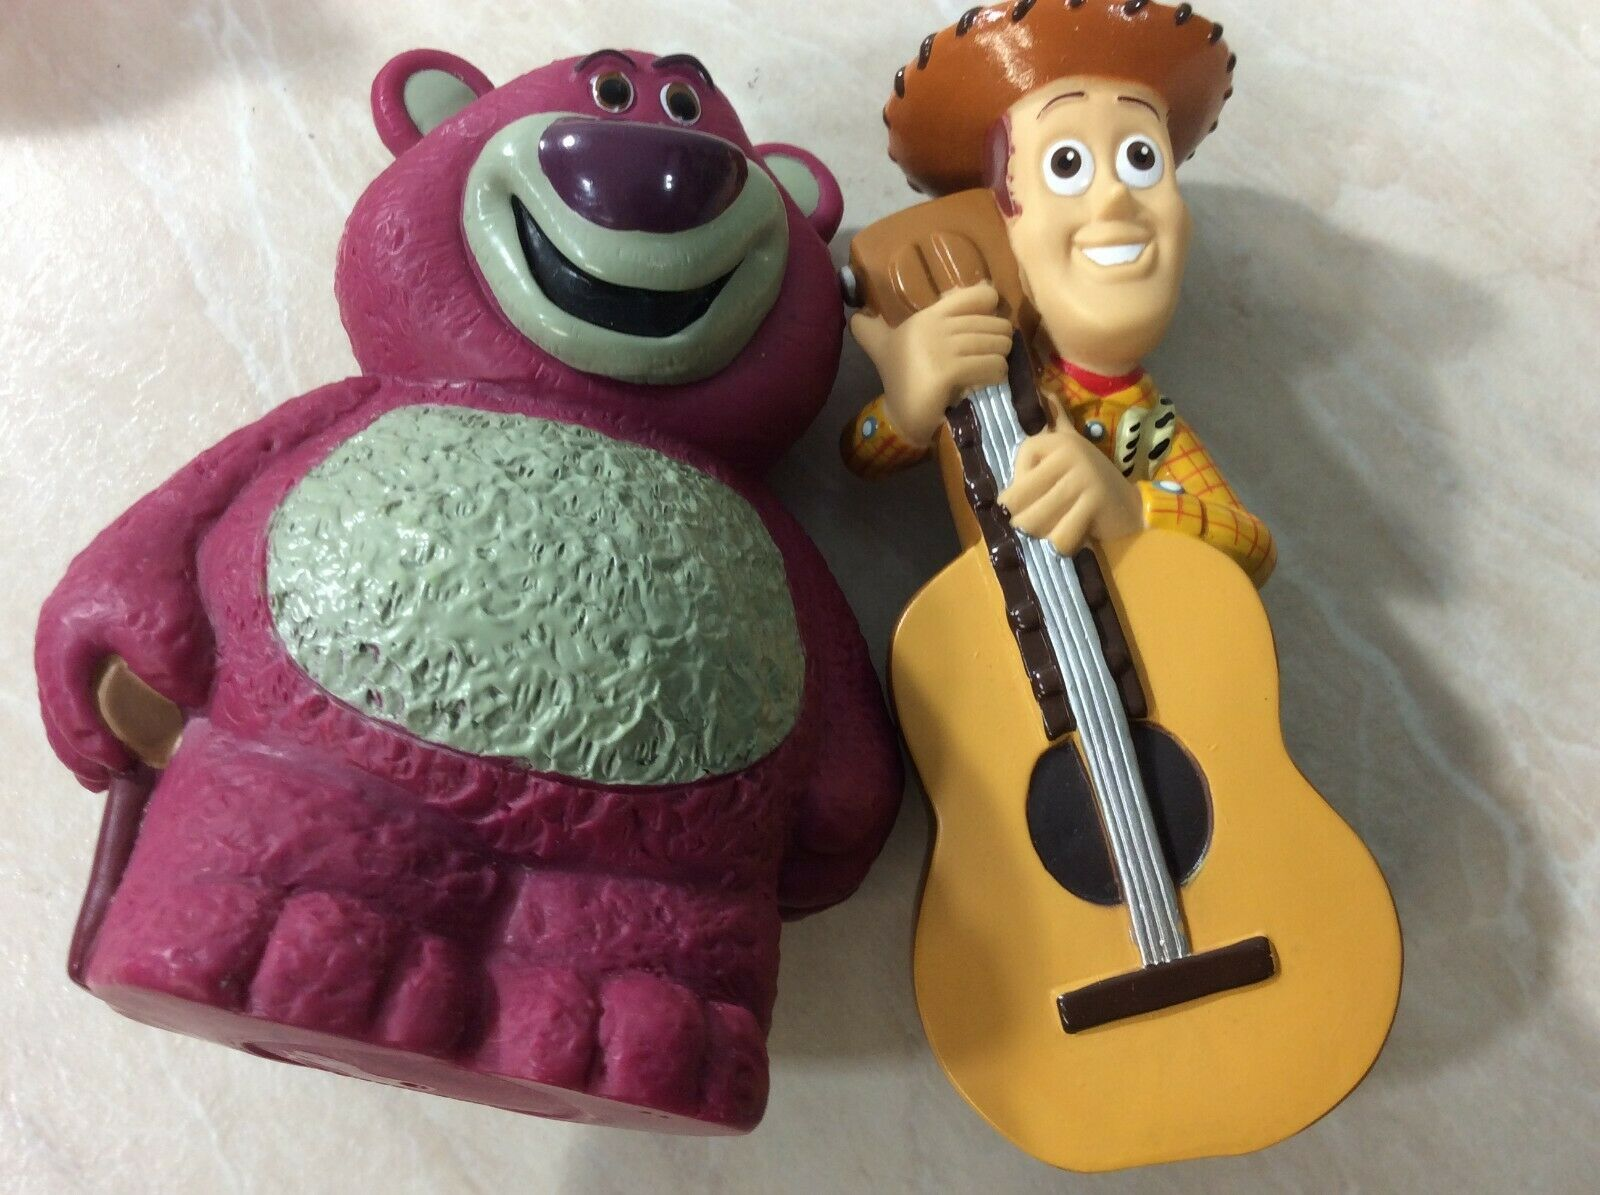 Disney Toy Story Figures with Carrying Bag 2014 Pixar Woody Buzz Hamm Lot of 7 image 7